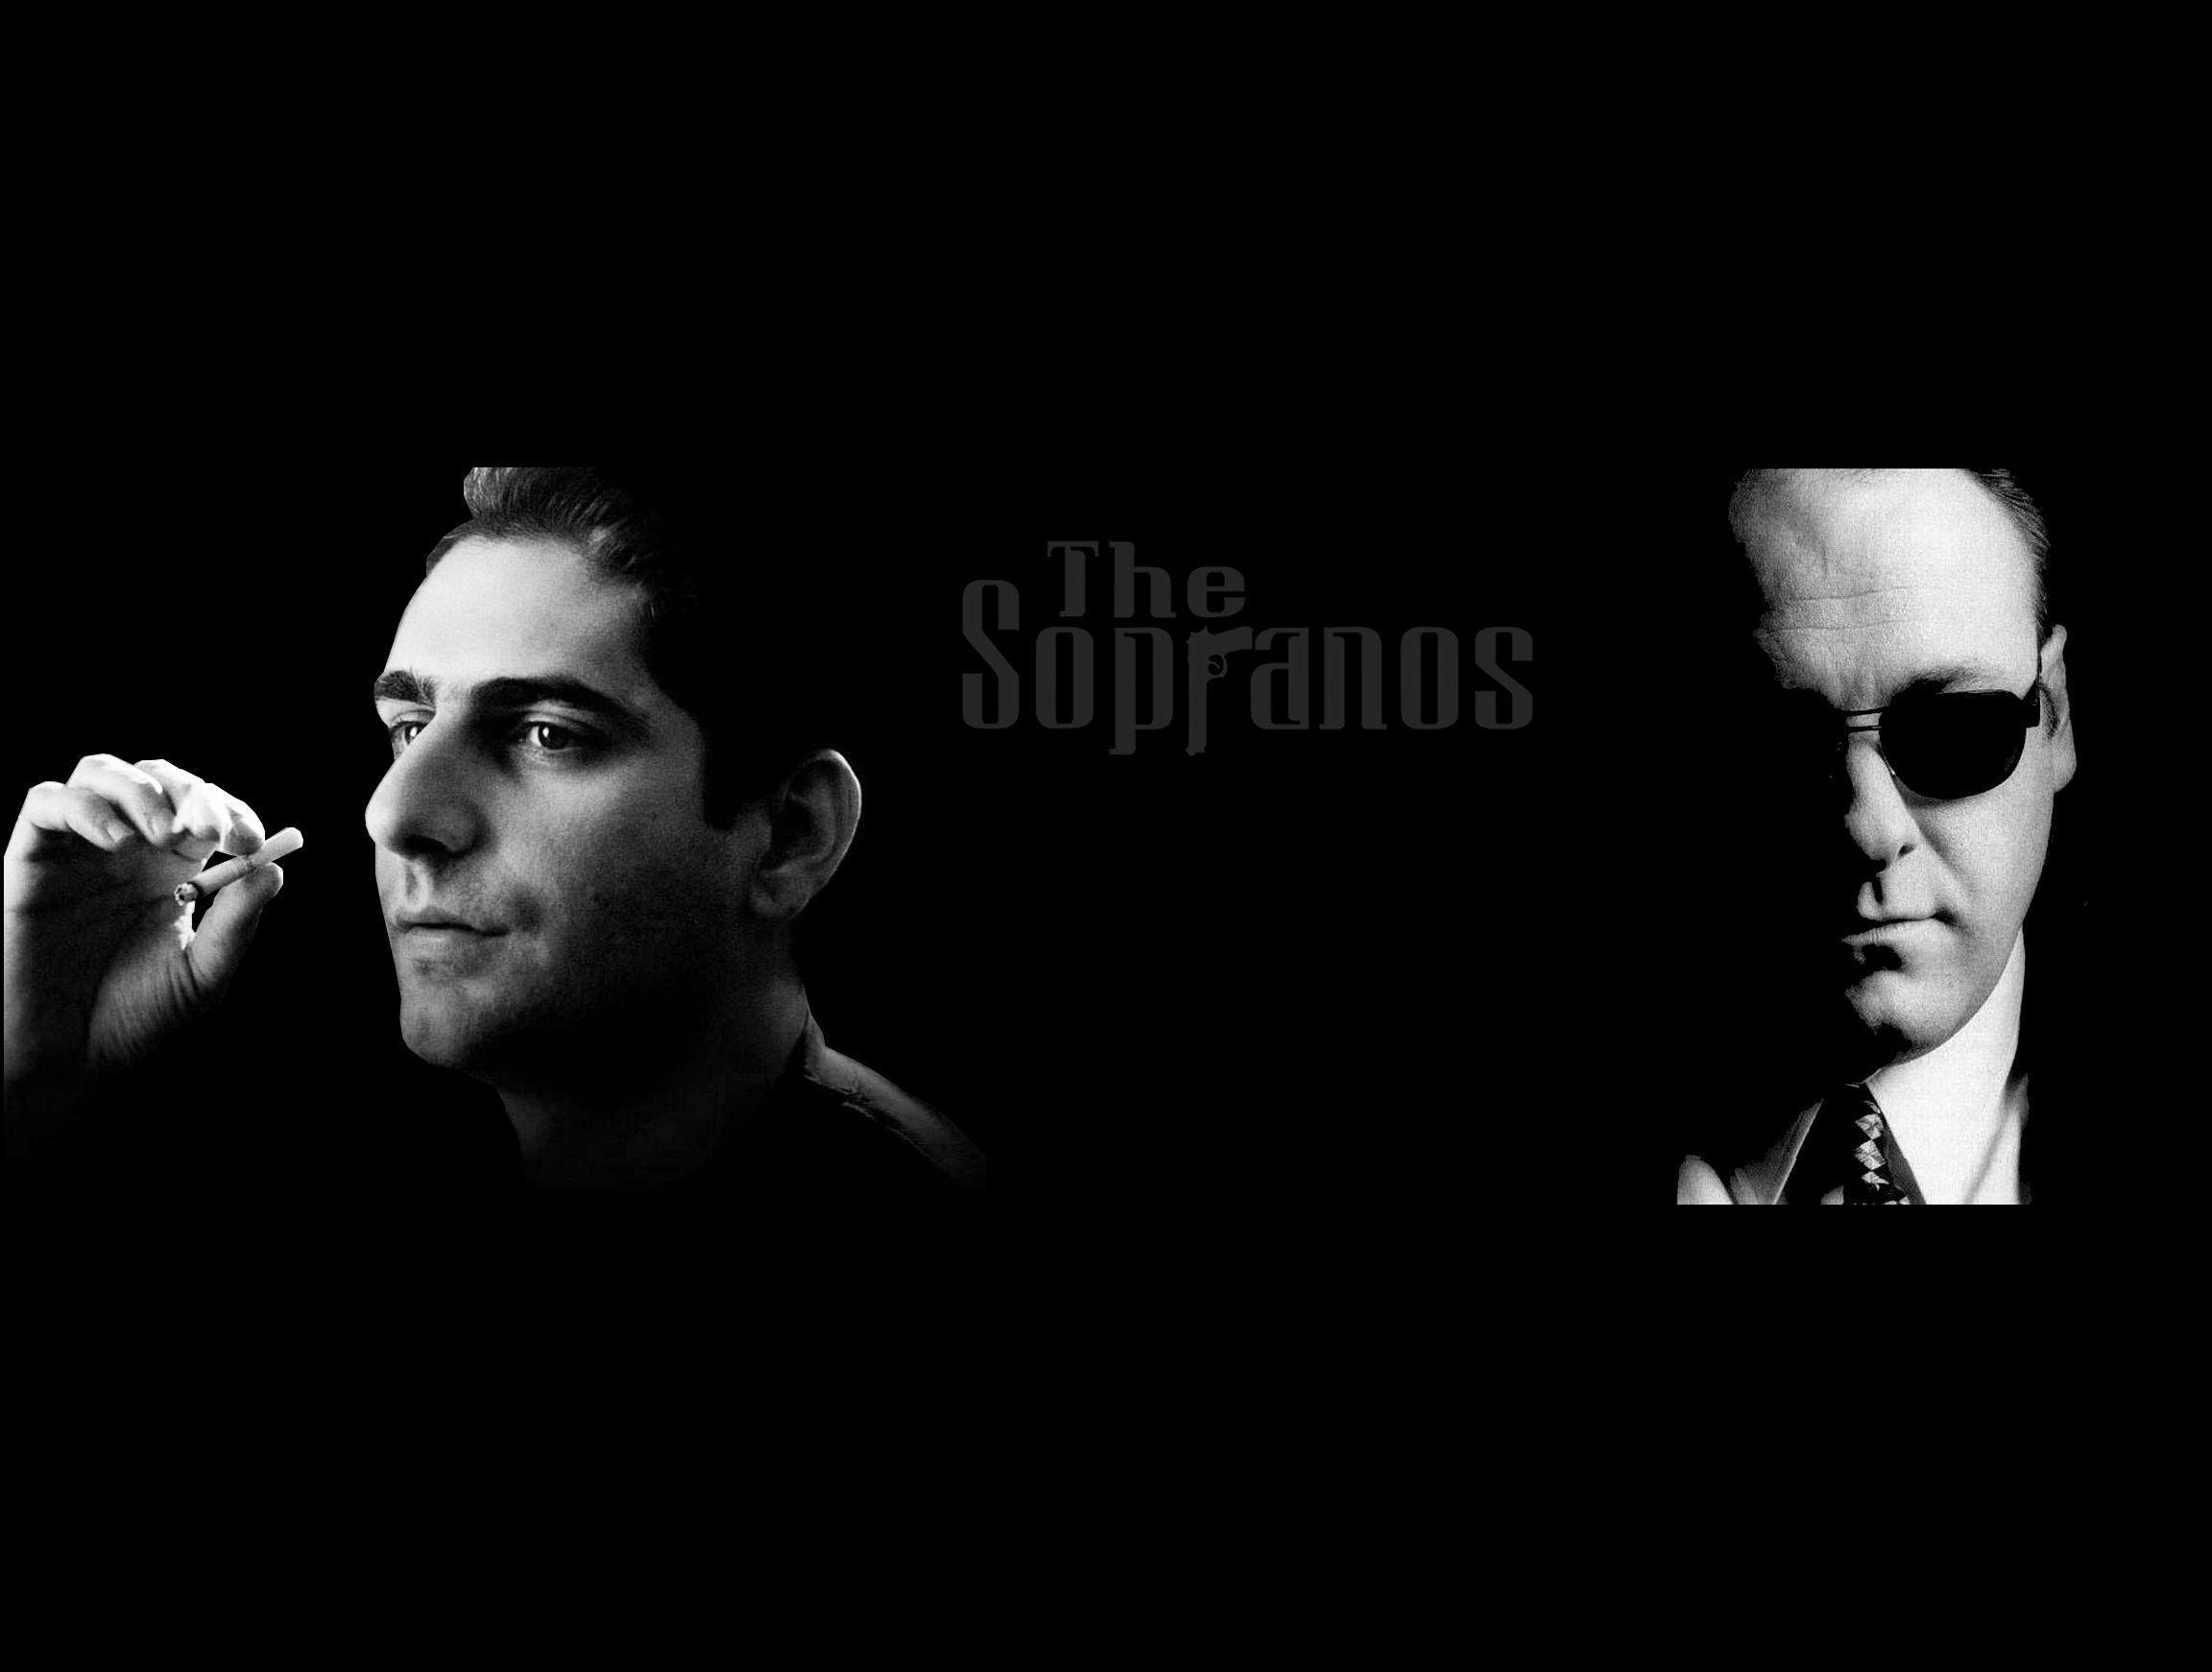 Image For > The Sopranos Bada Bing Wallpapers